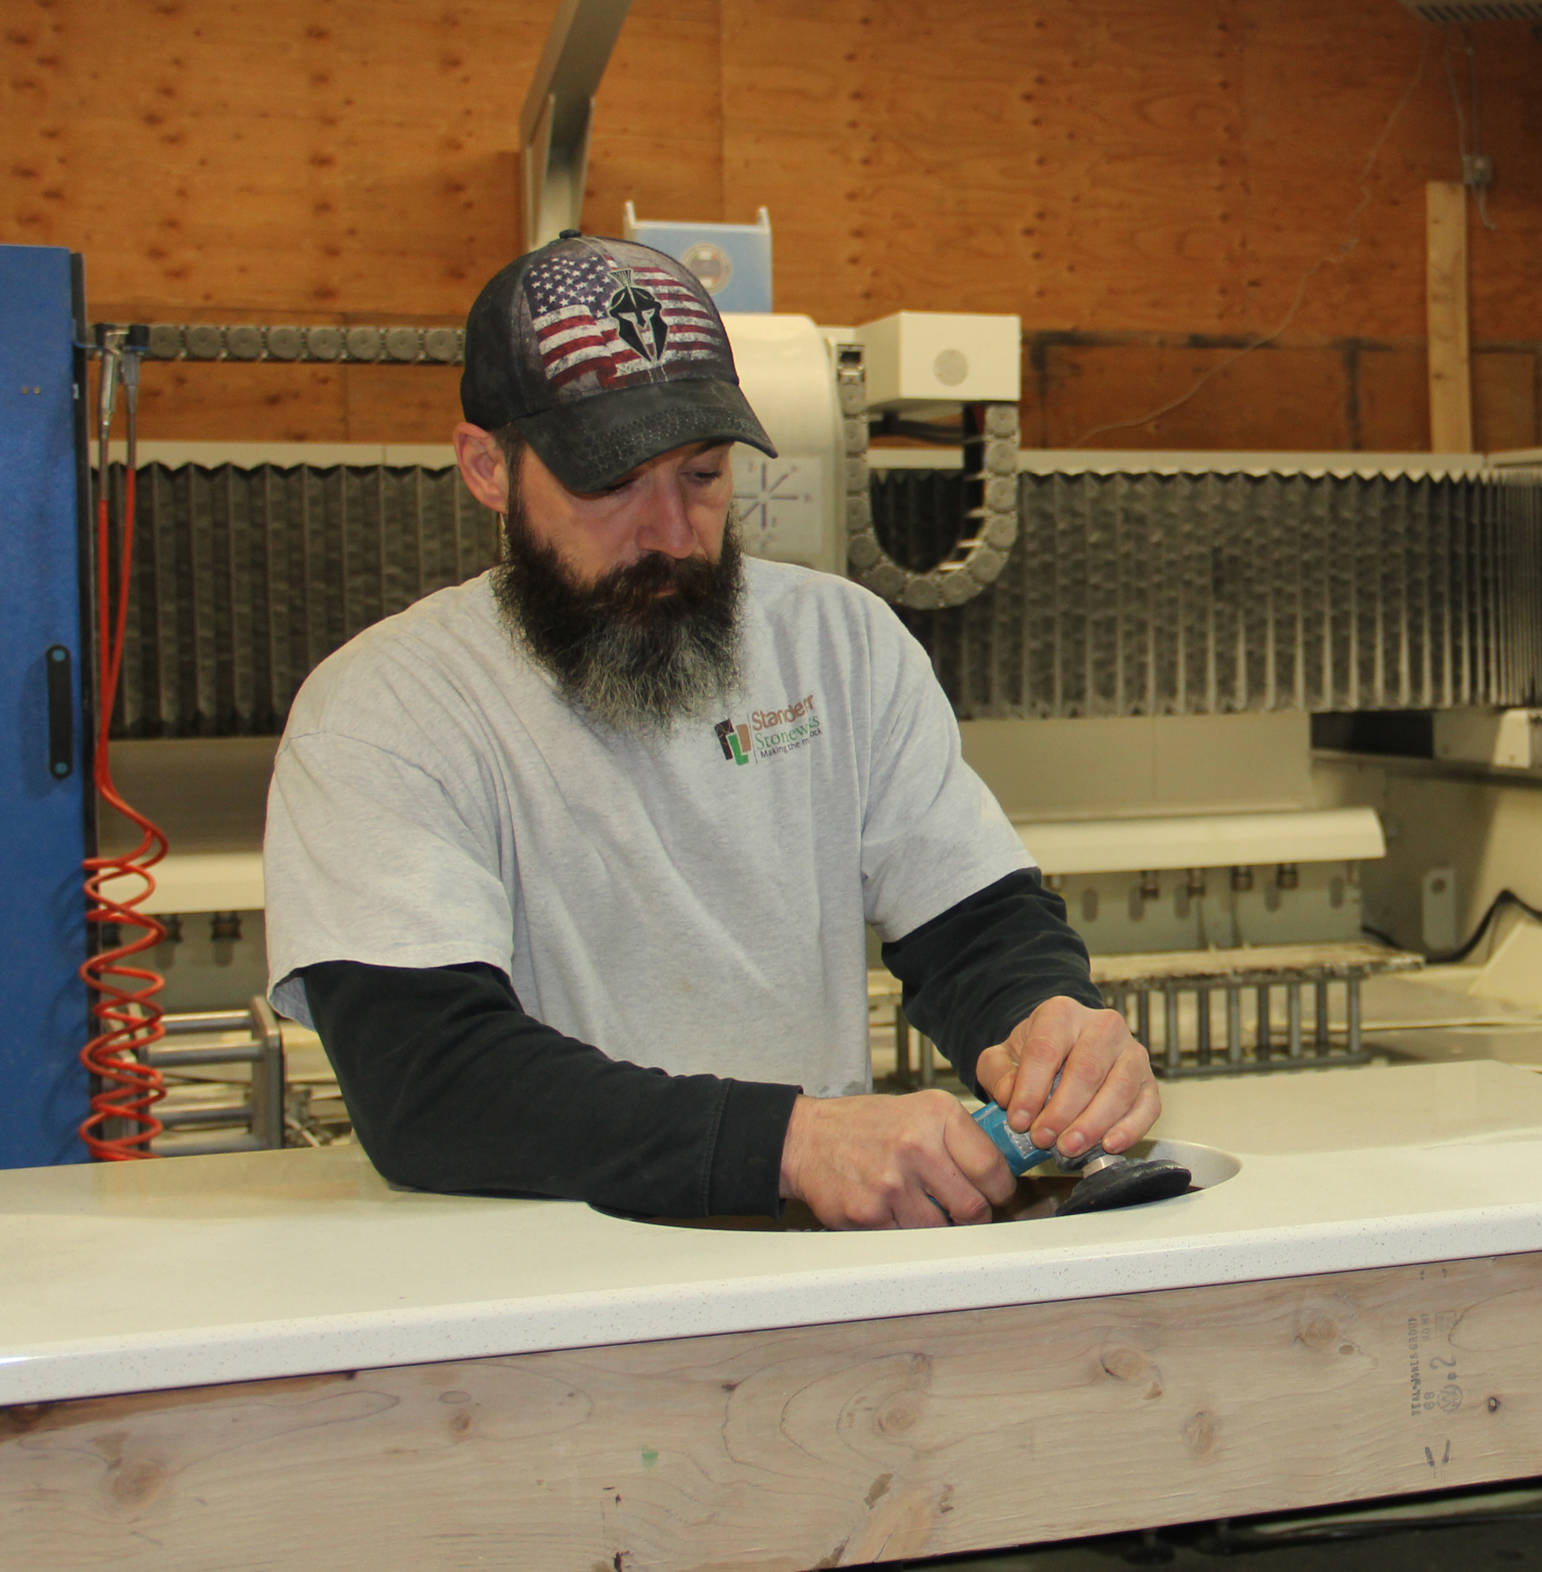 Foreman Nick polishes an undermount sink cut out on a quartz vanity at Standerfer Stoneworks.